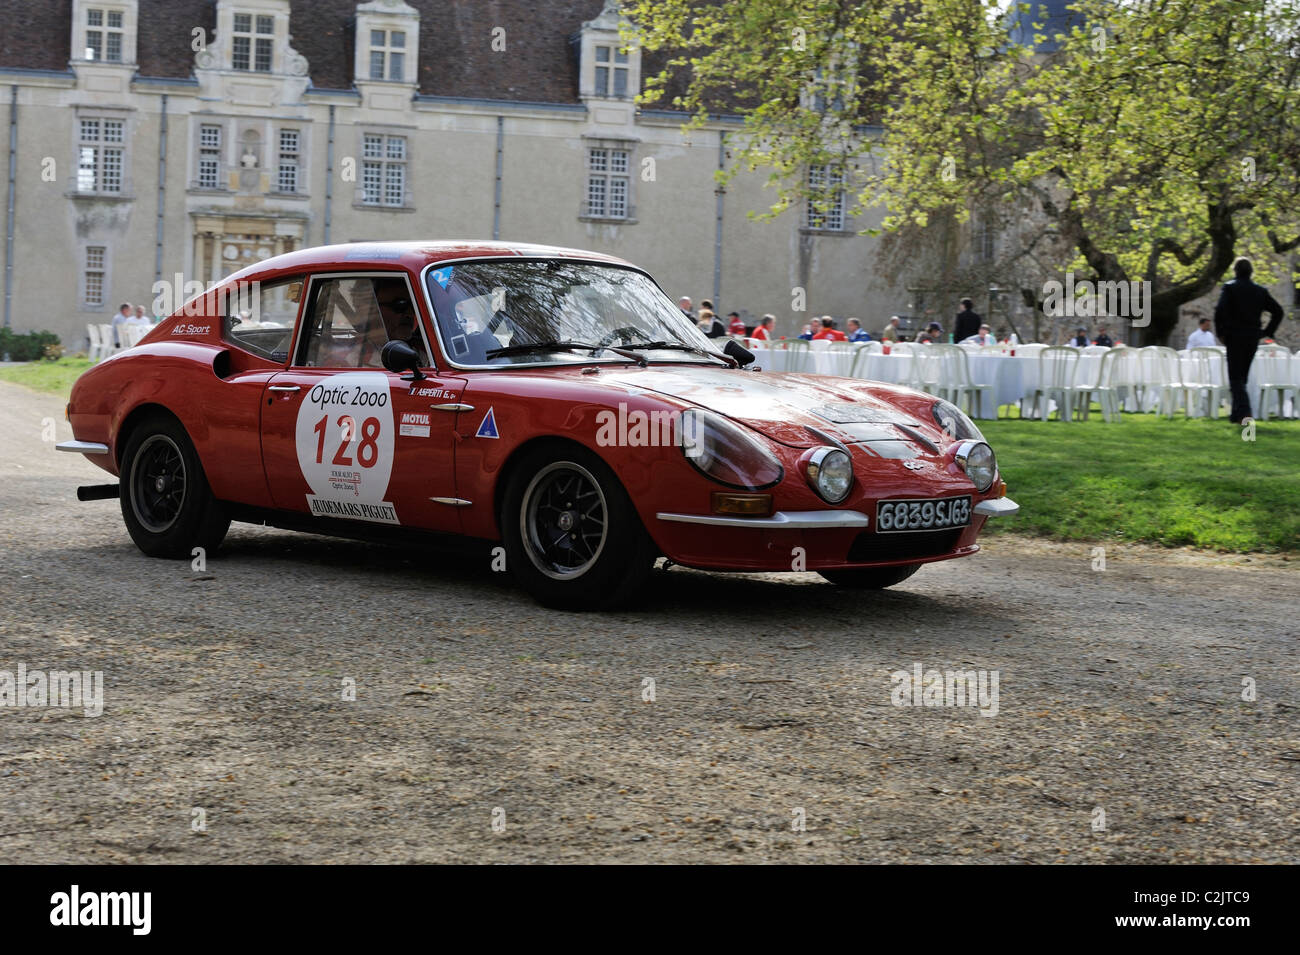 Stock photo of a 1972 CG B 1200 in the tour auto optic 2000 in 2011. - Stock Image